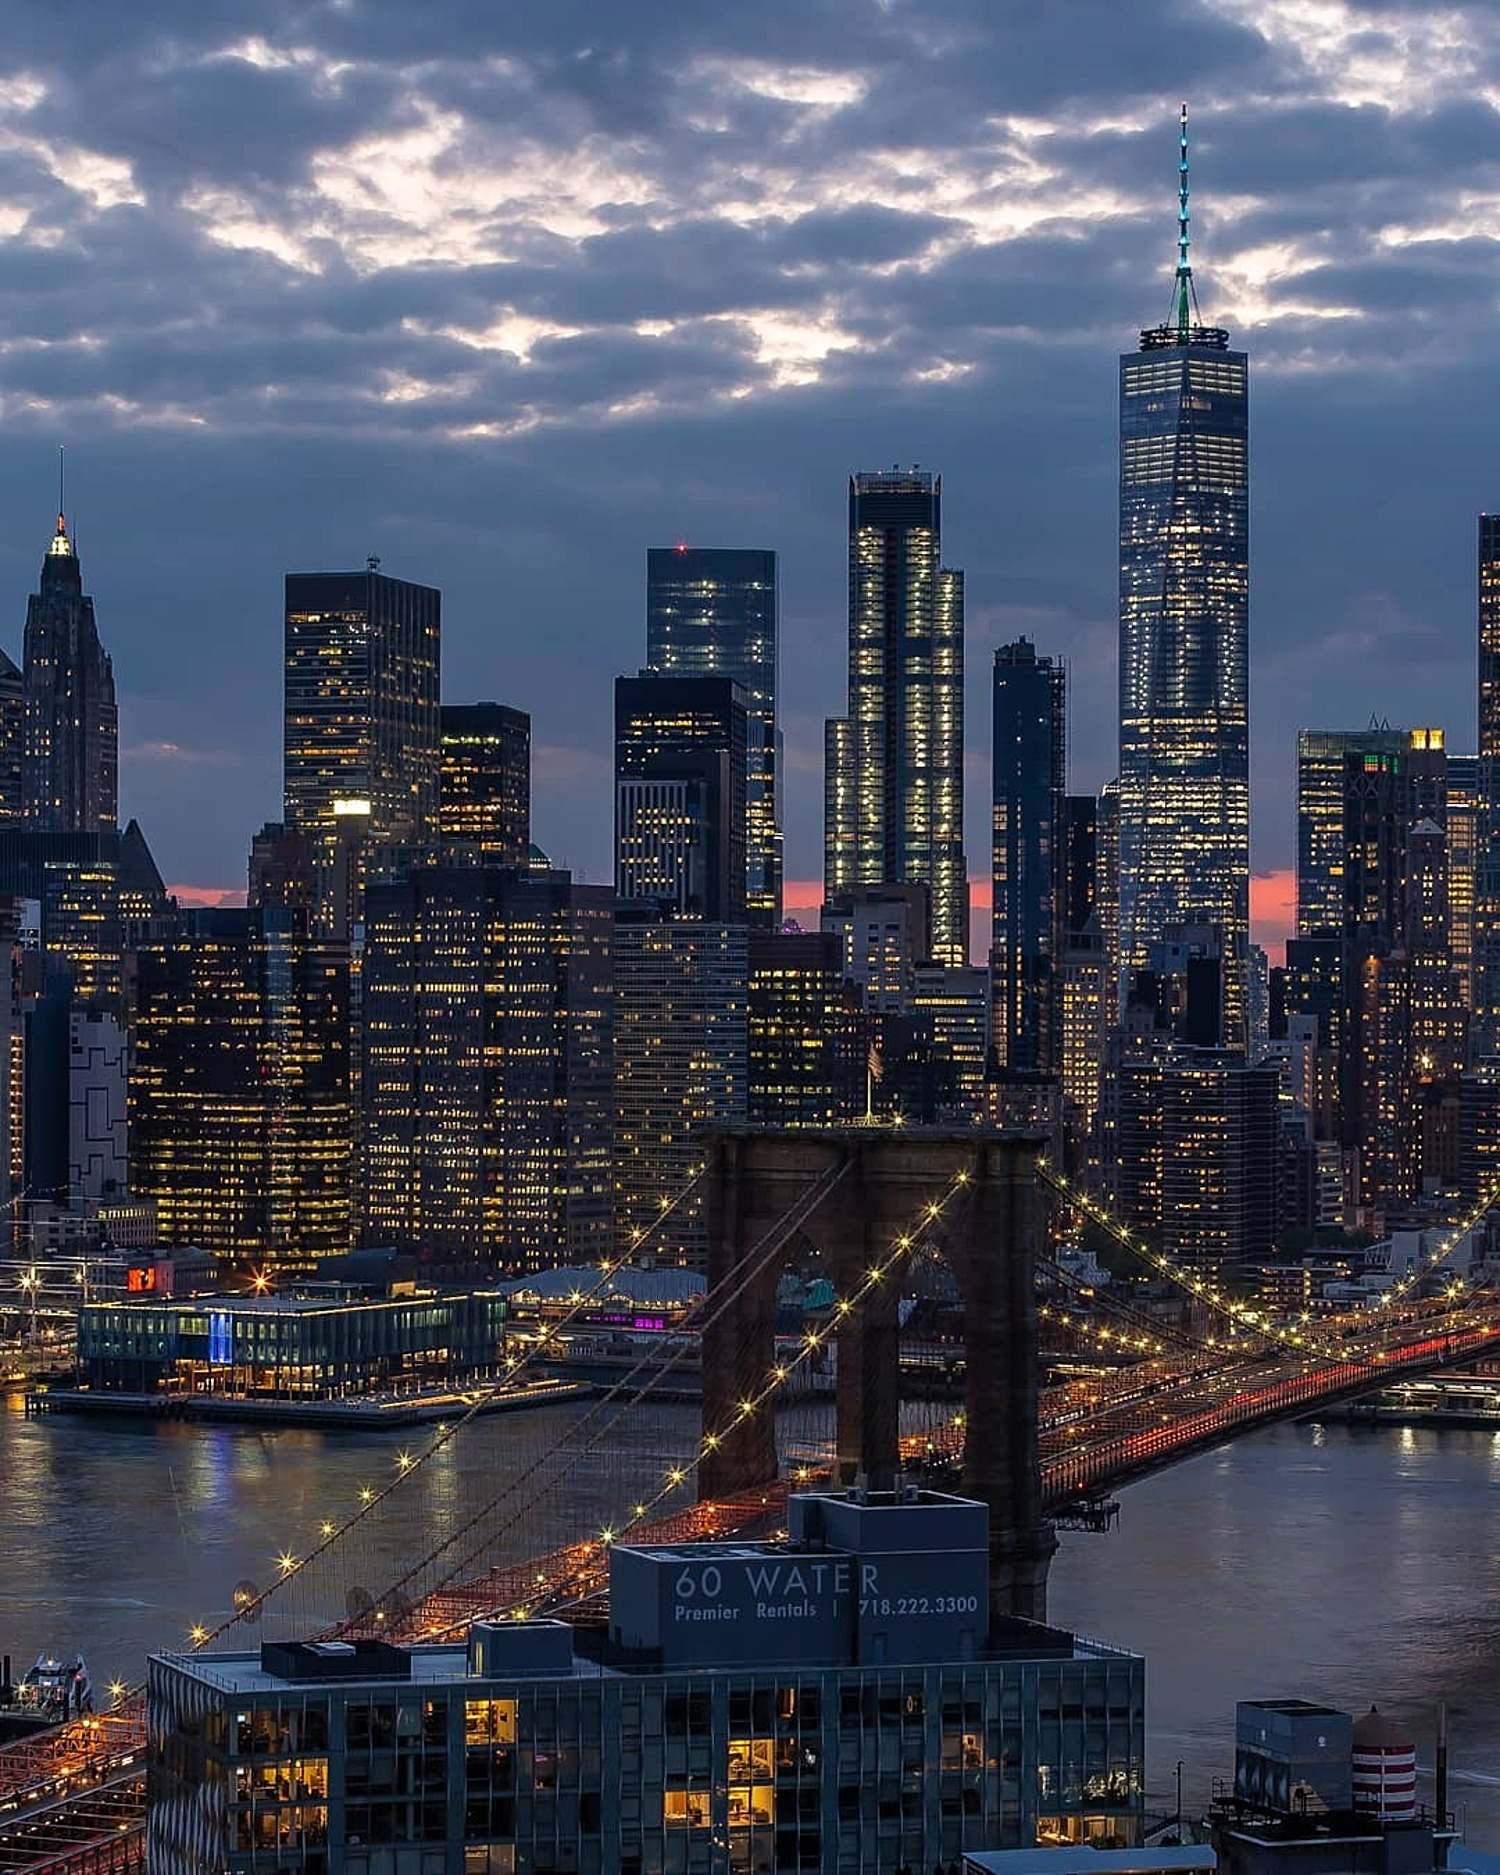 Brooklyn Bridge and Lower Manhattan Skyline, New York